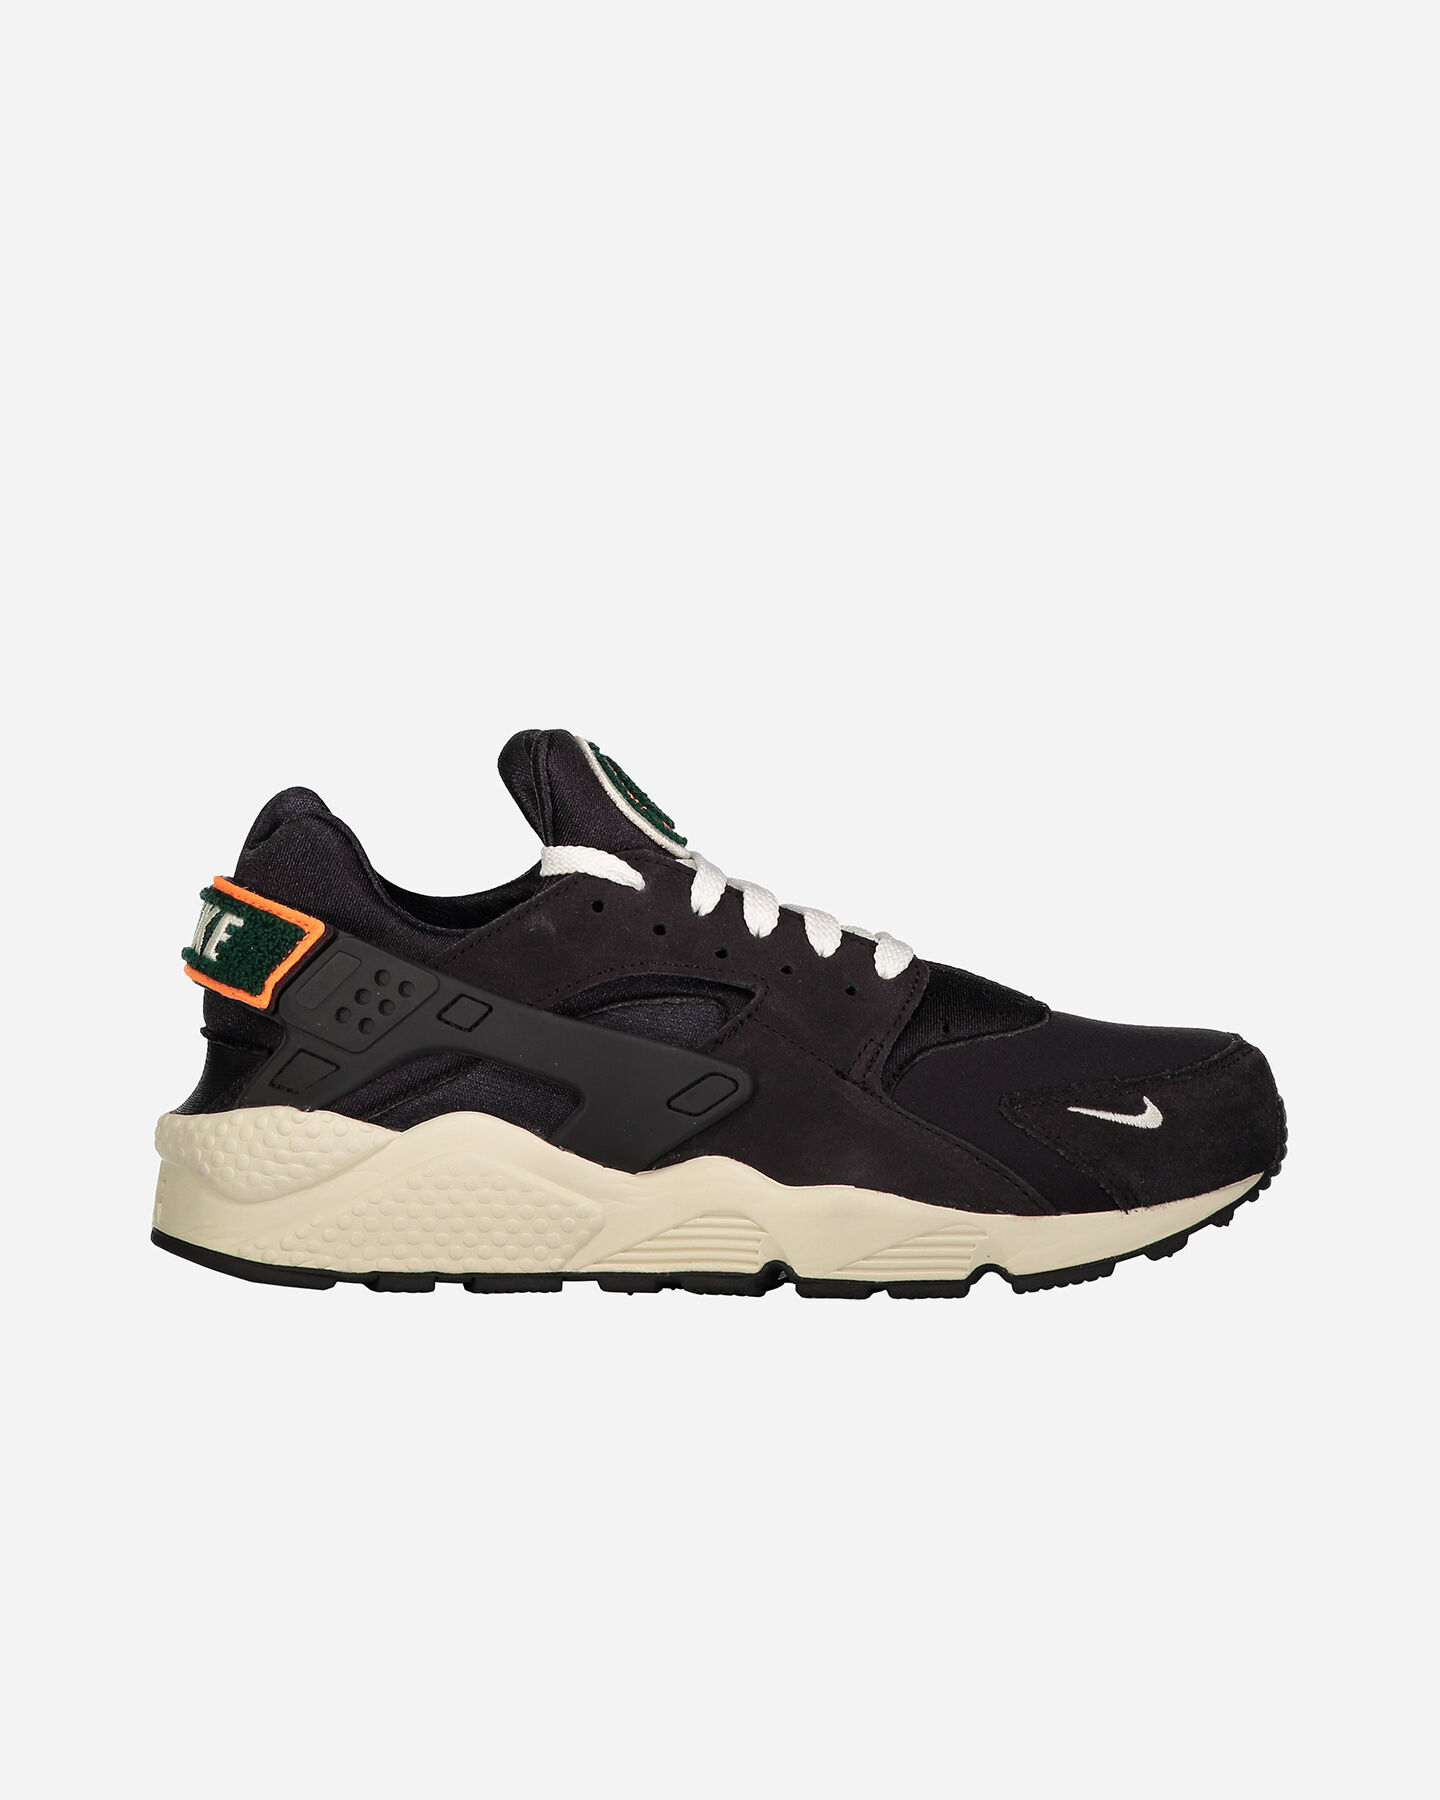 check out caefb c68d7 buy nike air vapormax plus shark tooth black red for sale sole look 39871  4a0b4  order offerte uomo nike air huarache premium m 53176 aad3f